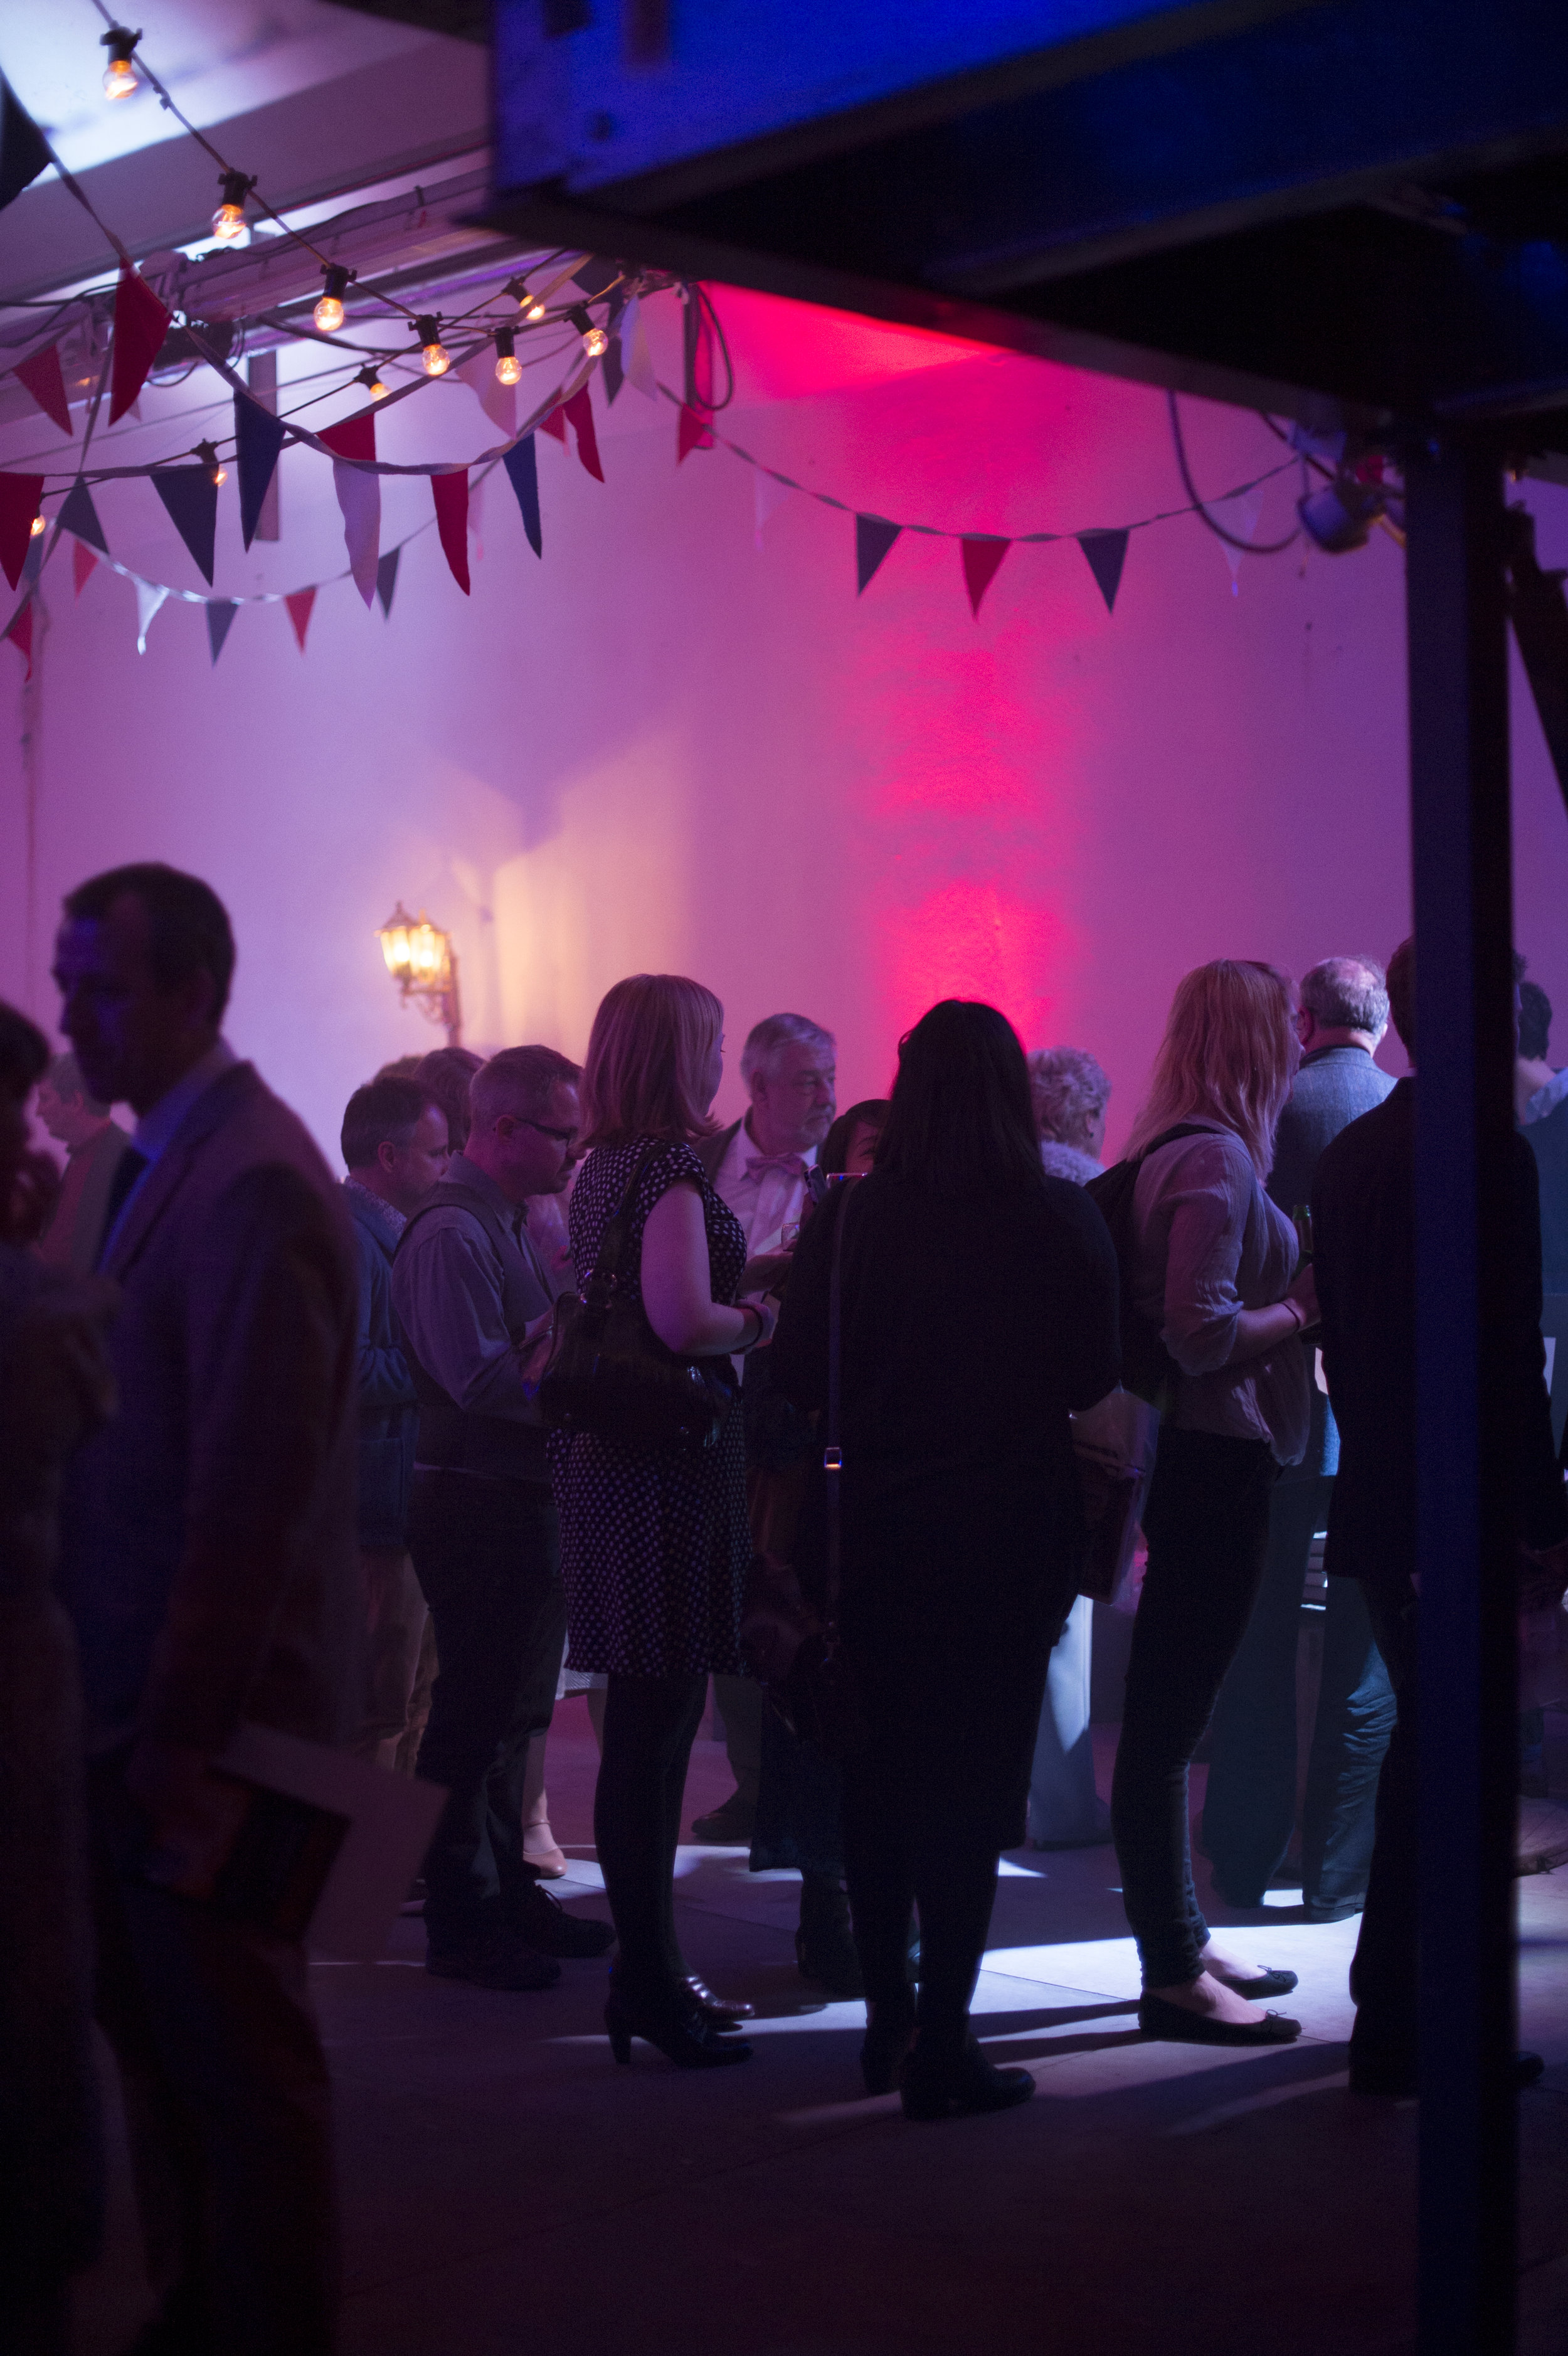 Launch party at The Vaults in London